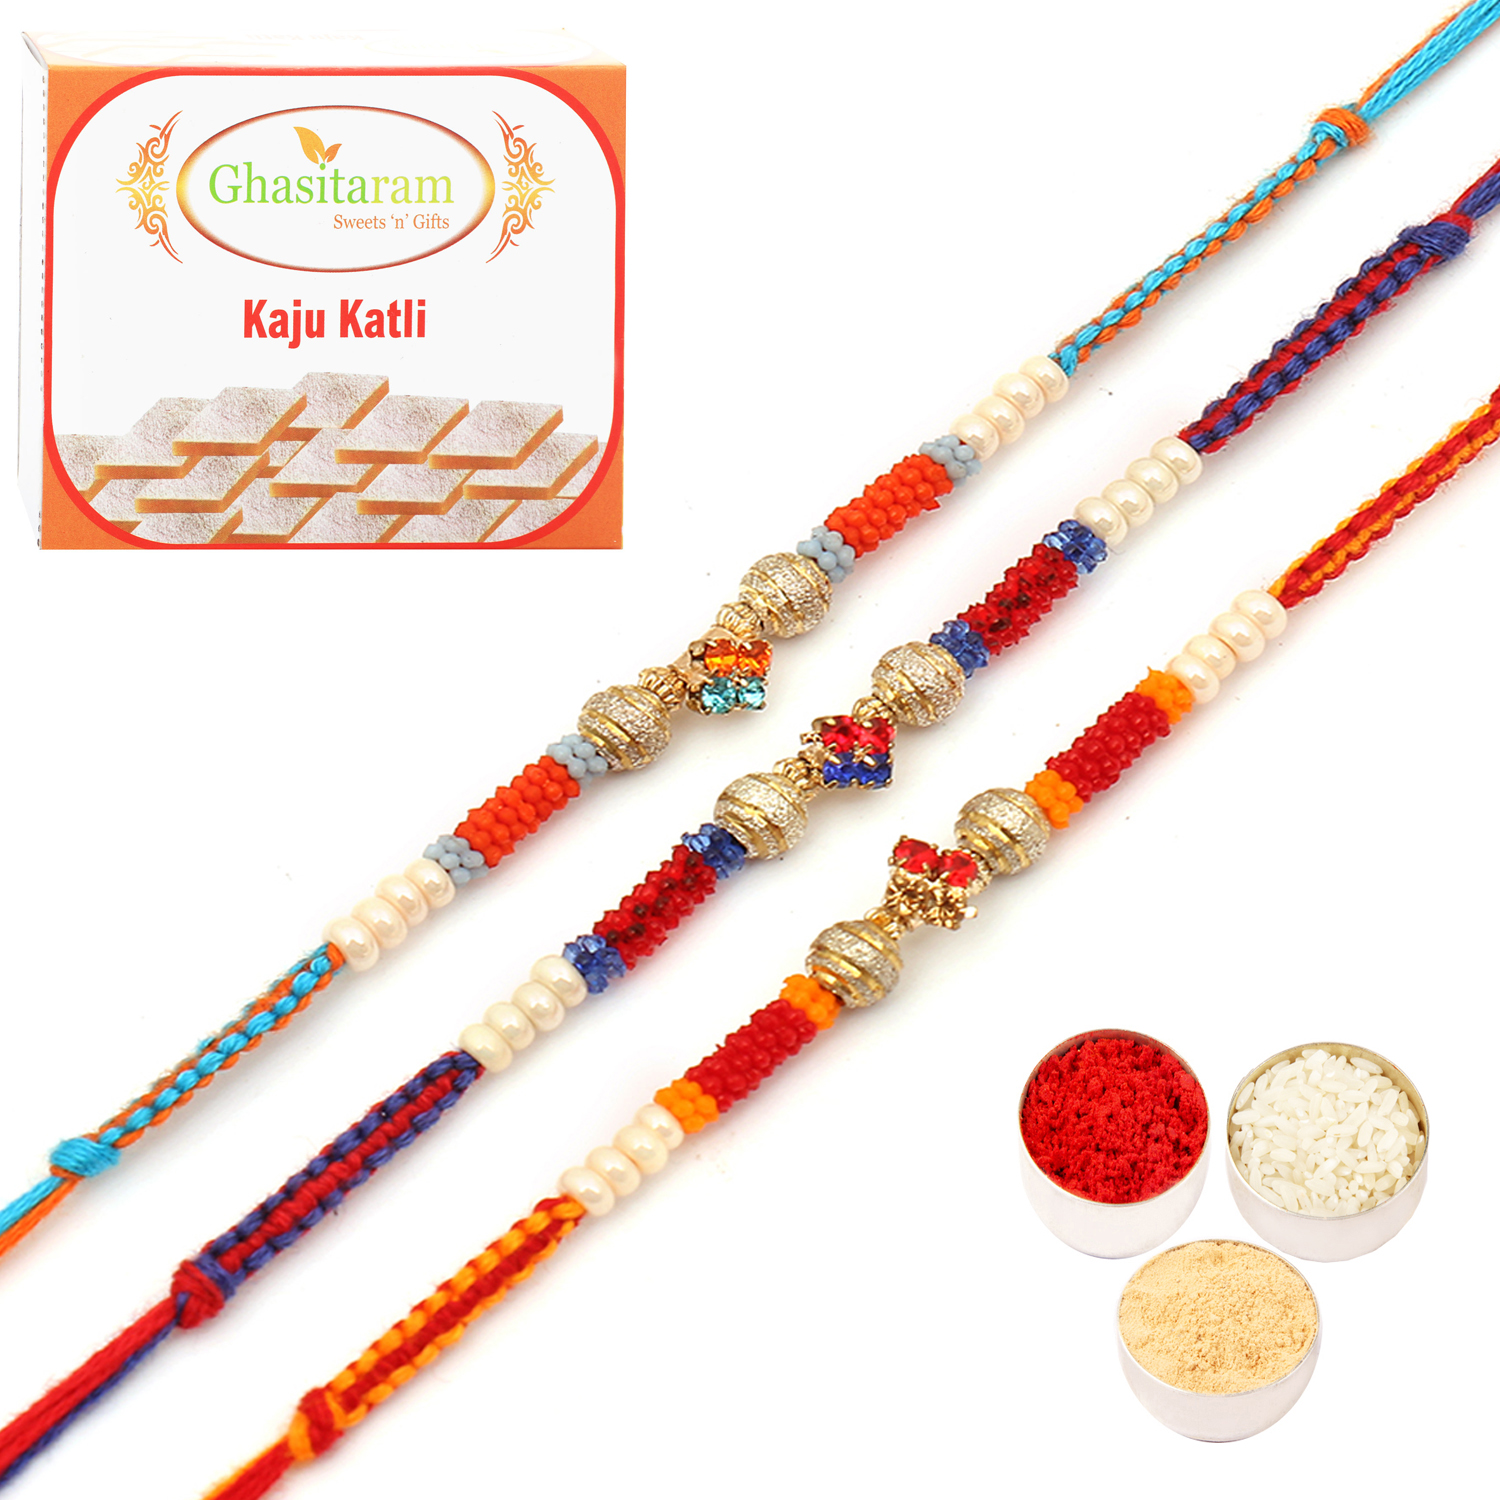 Set of 3 MBH313 Rakhis with 400Gm Kaju Katli